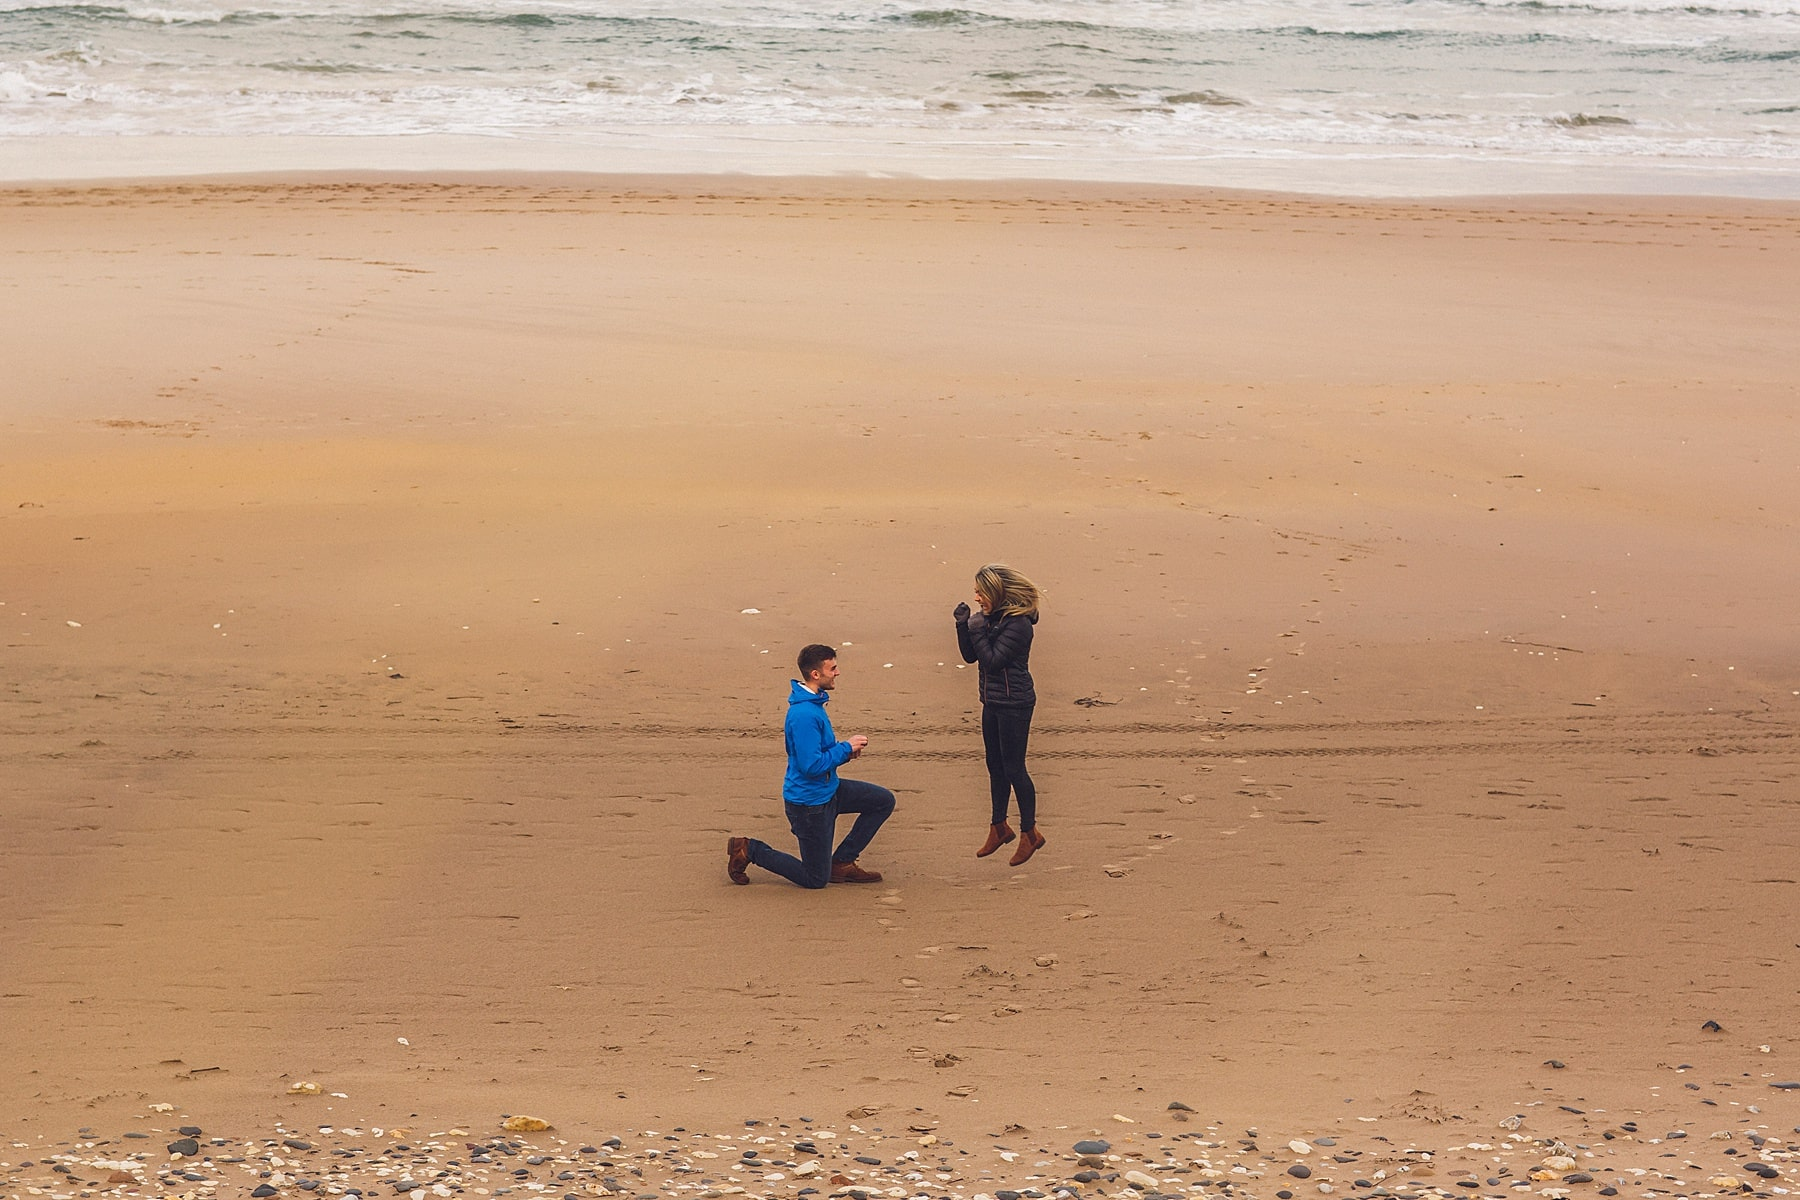 northern ireland wedding photographer,surprise proposal engagement,crieff hotel wedding,tinkakilly house wedding,port eliot wedding,whitepark bay,gracehall wedding,kilruddery house wedding,donegal beach wedding,